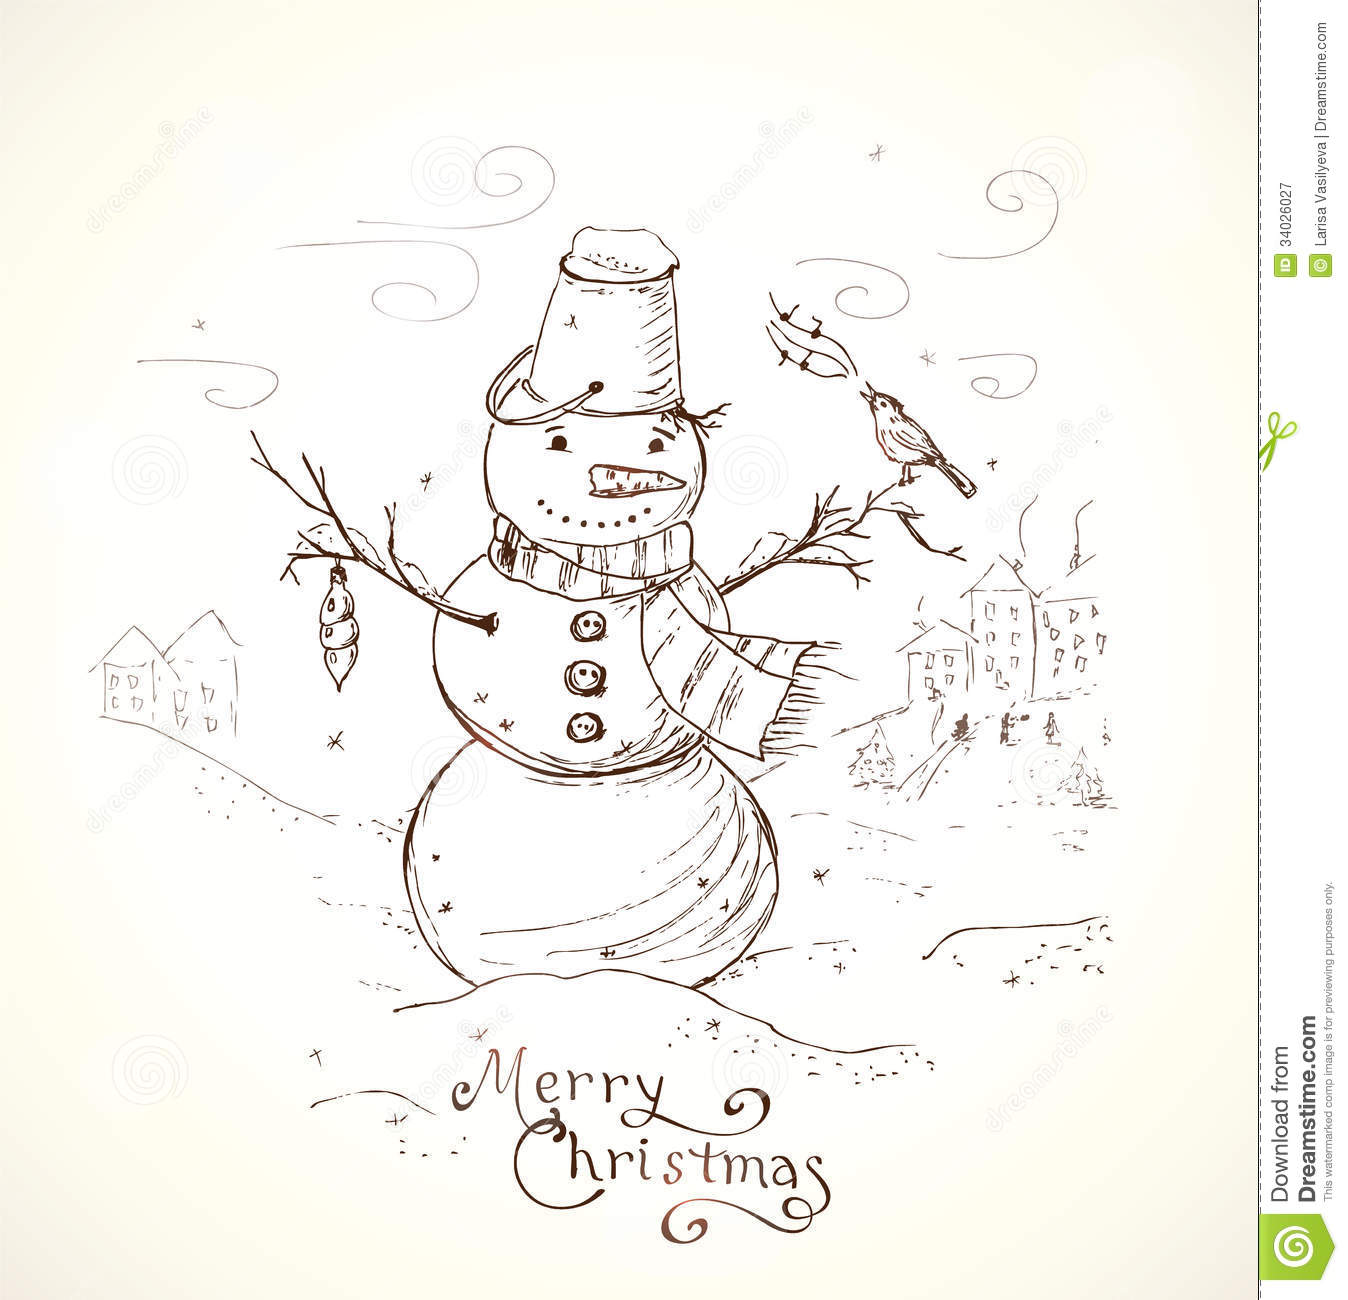 Christmas Greeting Card Royalty Free Stock Photography - Image ...